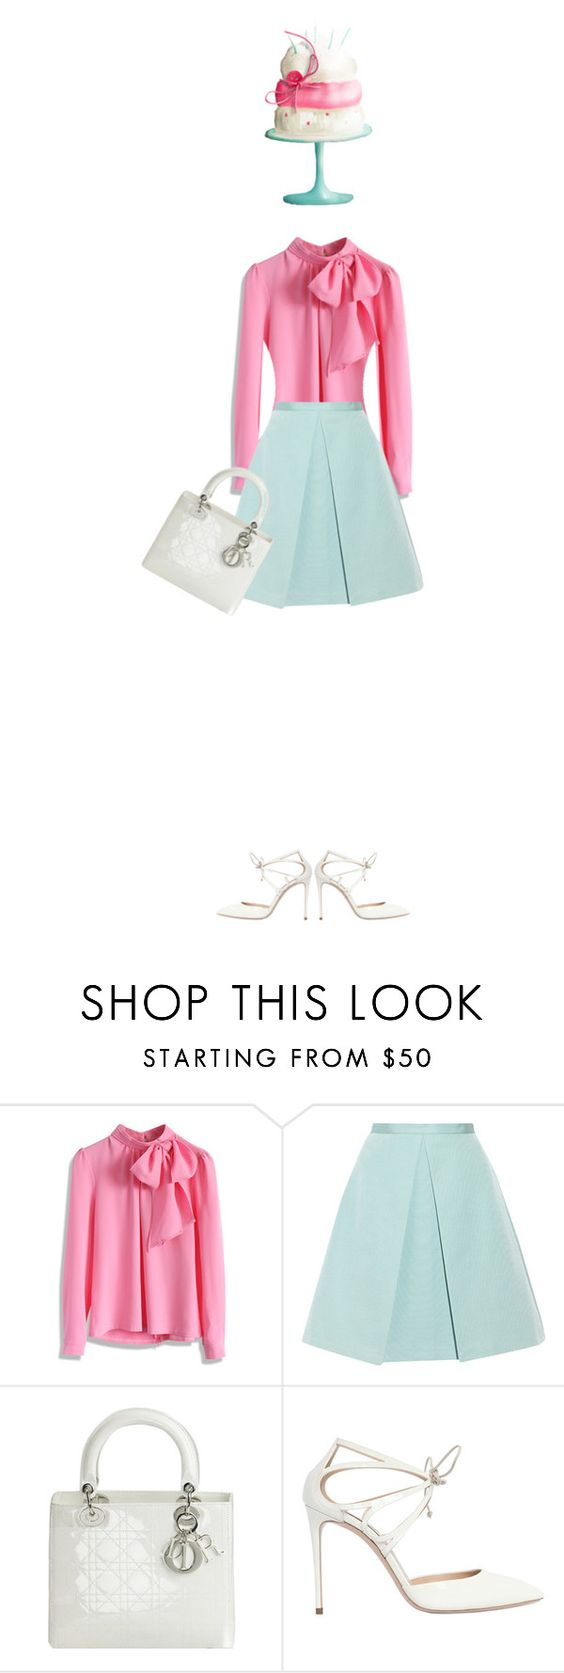 """""""Happy Brithday to Me"""" by polylana ❤ liked on Polyvore featuring Chicwish, TIBI, Christian Dior and Casadei"""